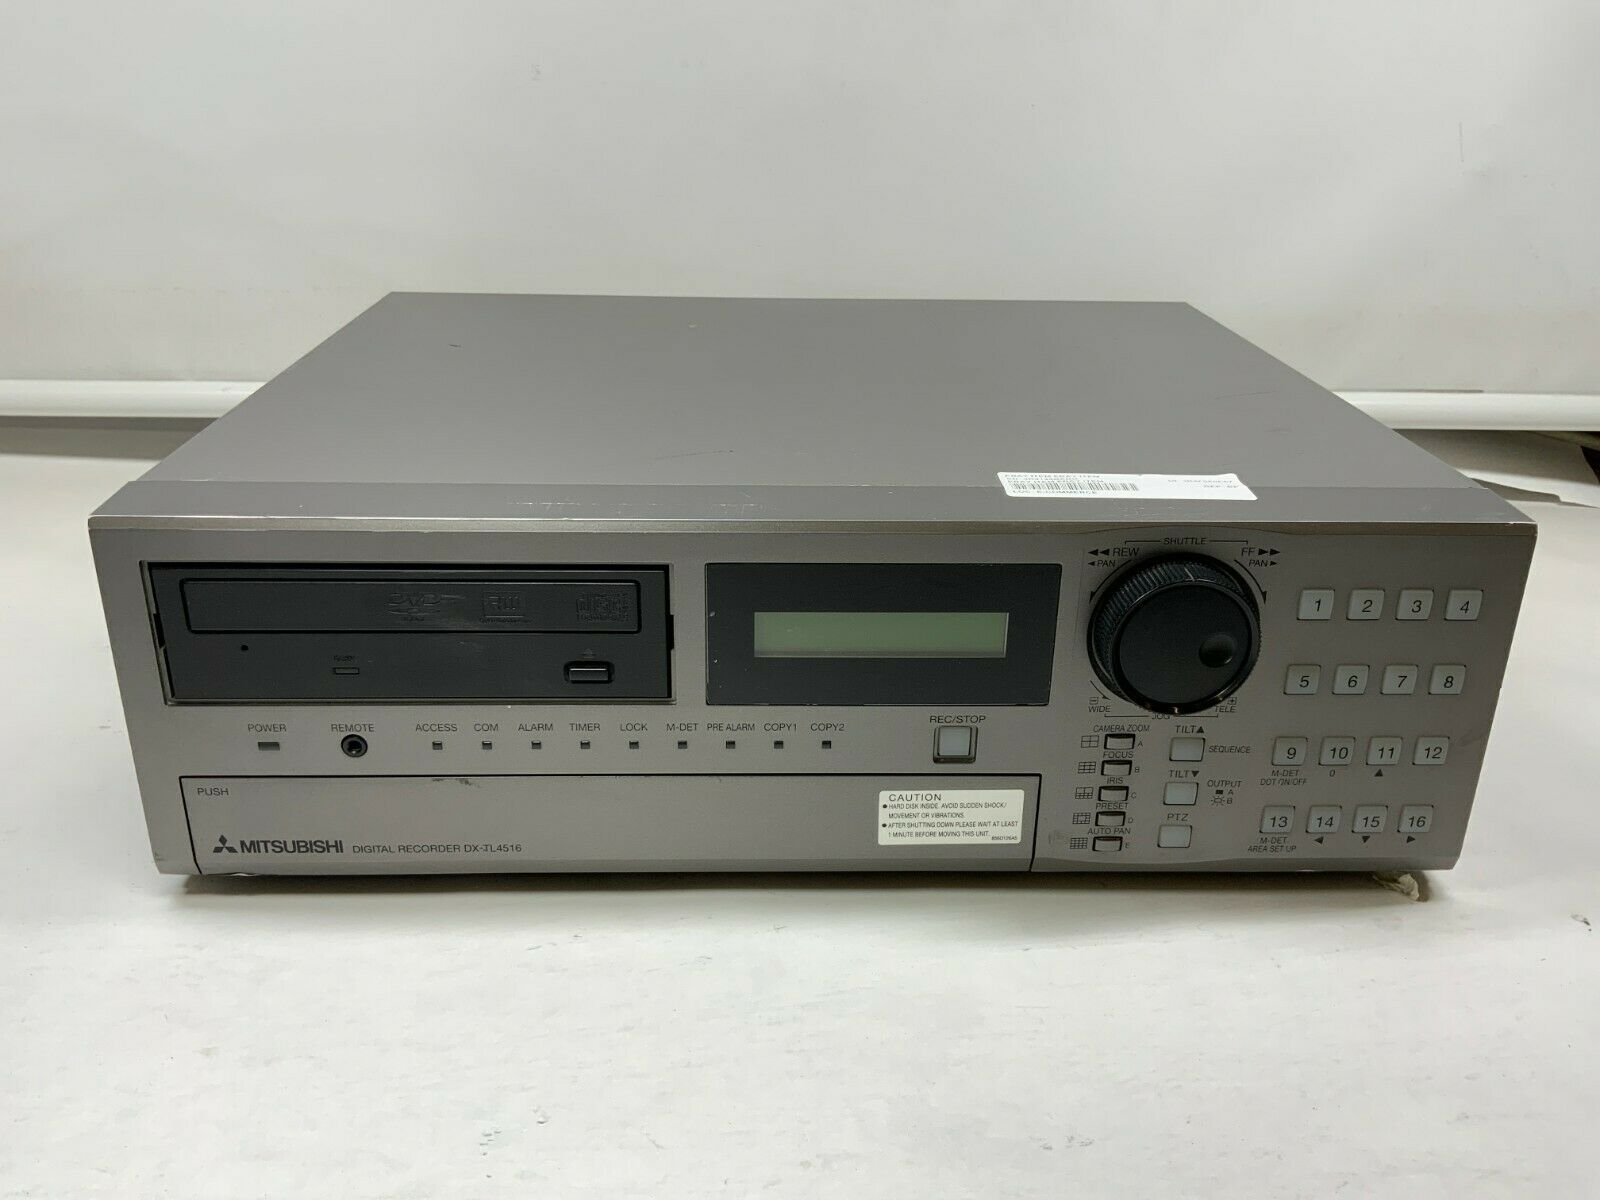 Mitsubishi DX-TL4516E 16 Channel Digital Video Recorder